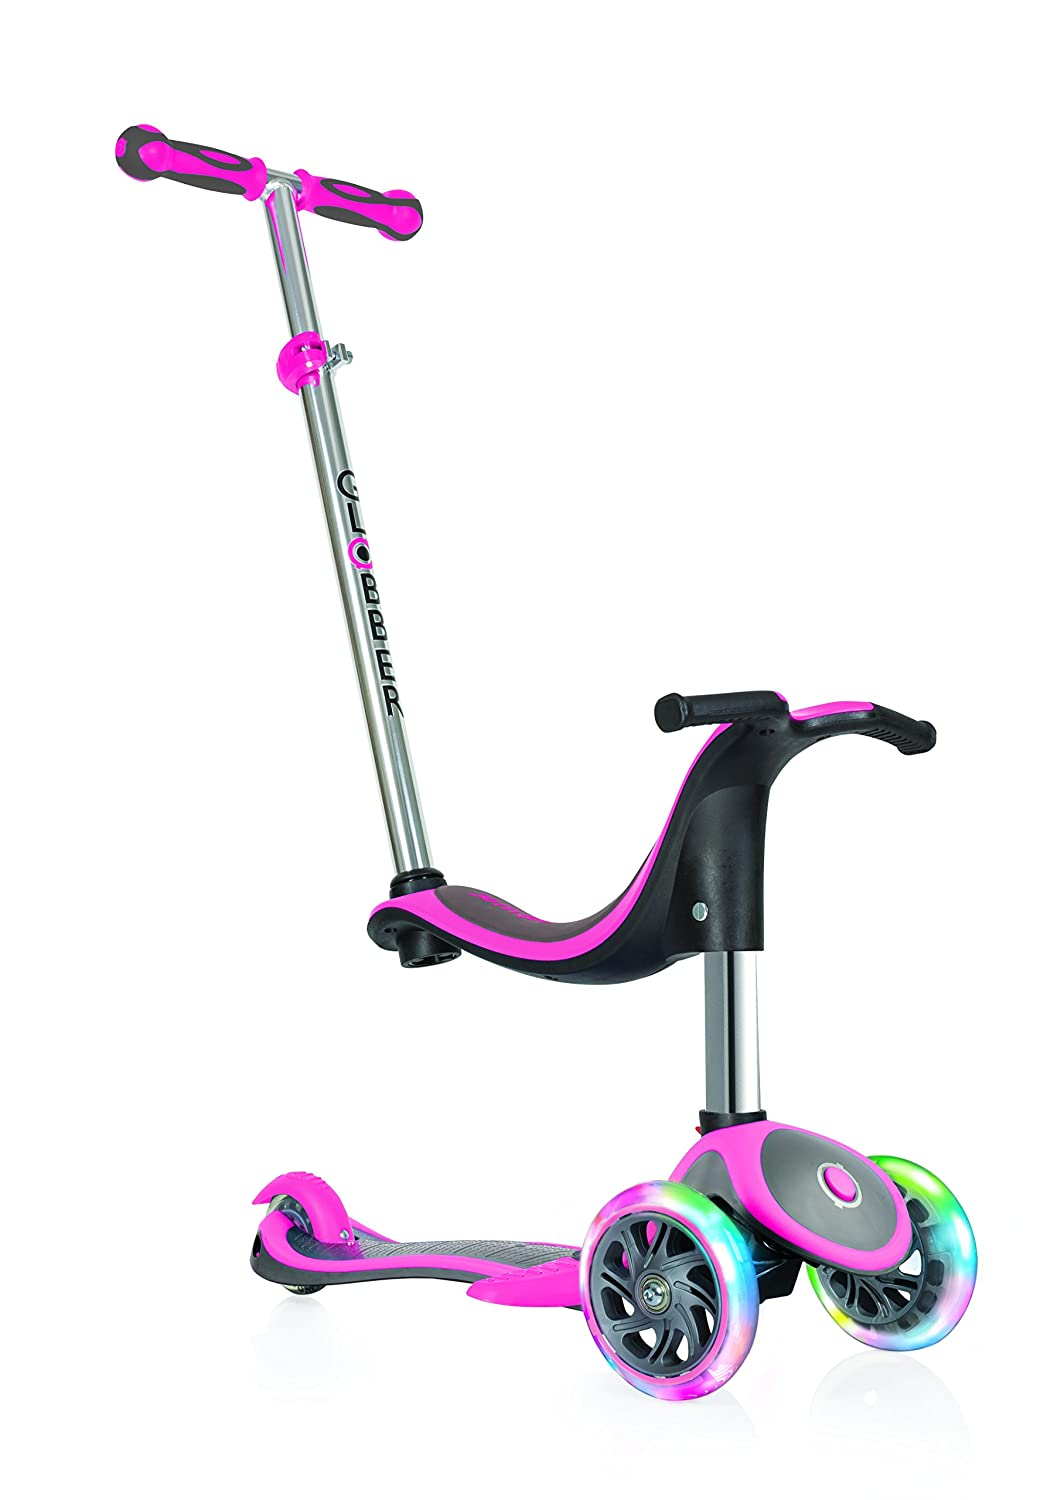 Globber Kinder EVO 4 in1 Plus mit Licht bis Rädern Scooter, Kinder, Evo 4-in-1 Plus with Light Up Wheels, neon pink 454-132